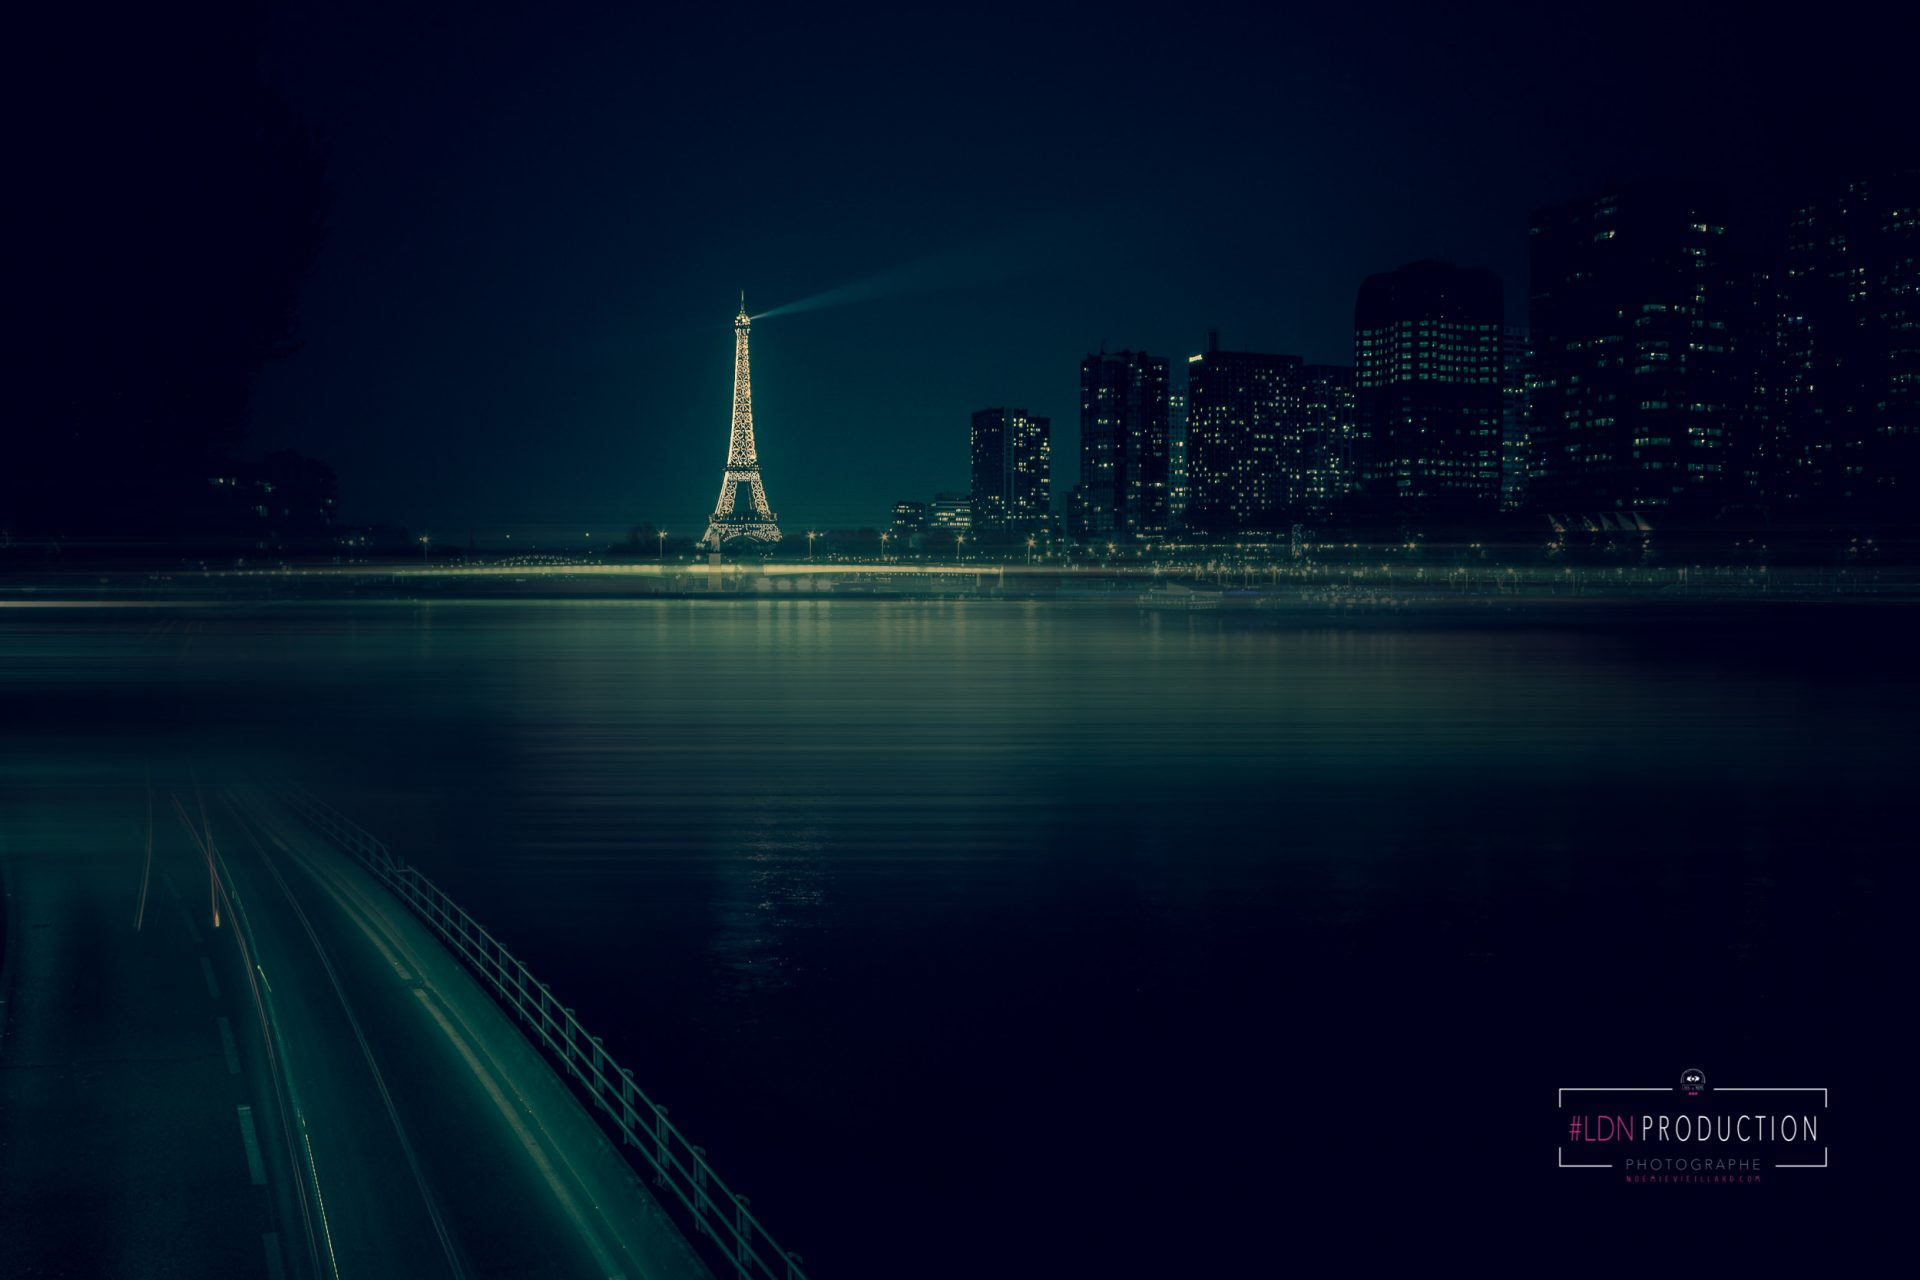 photo-art-paysage-urbain-paris-©-noemie-vieillard-photographe-